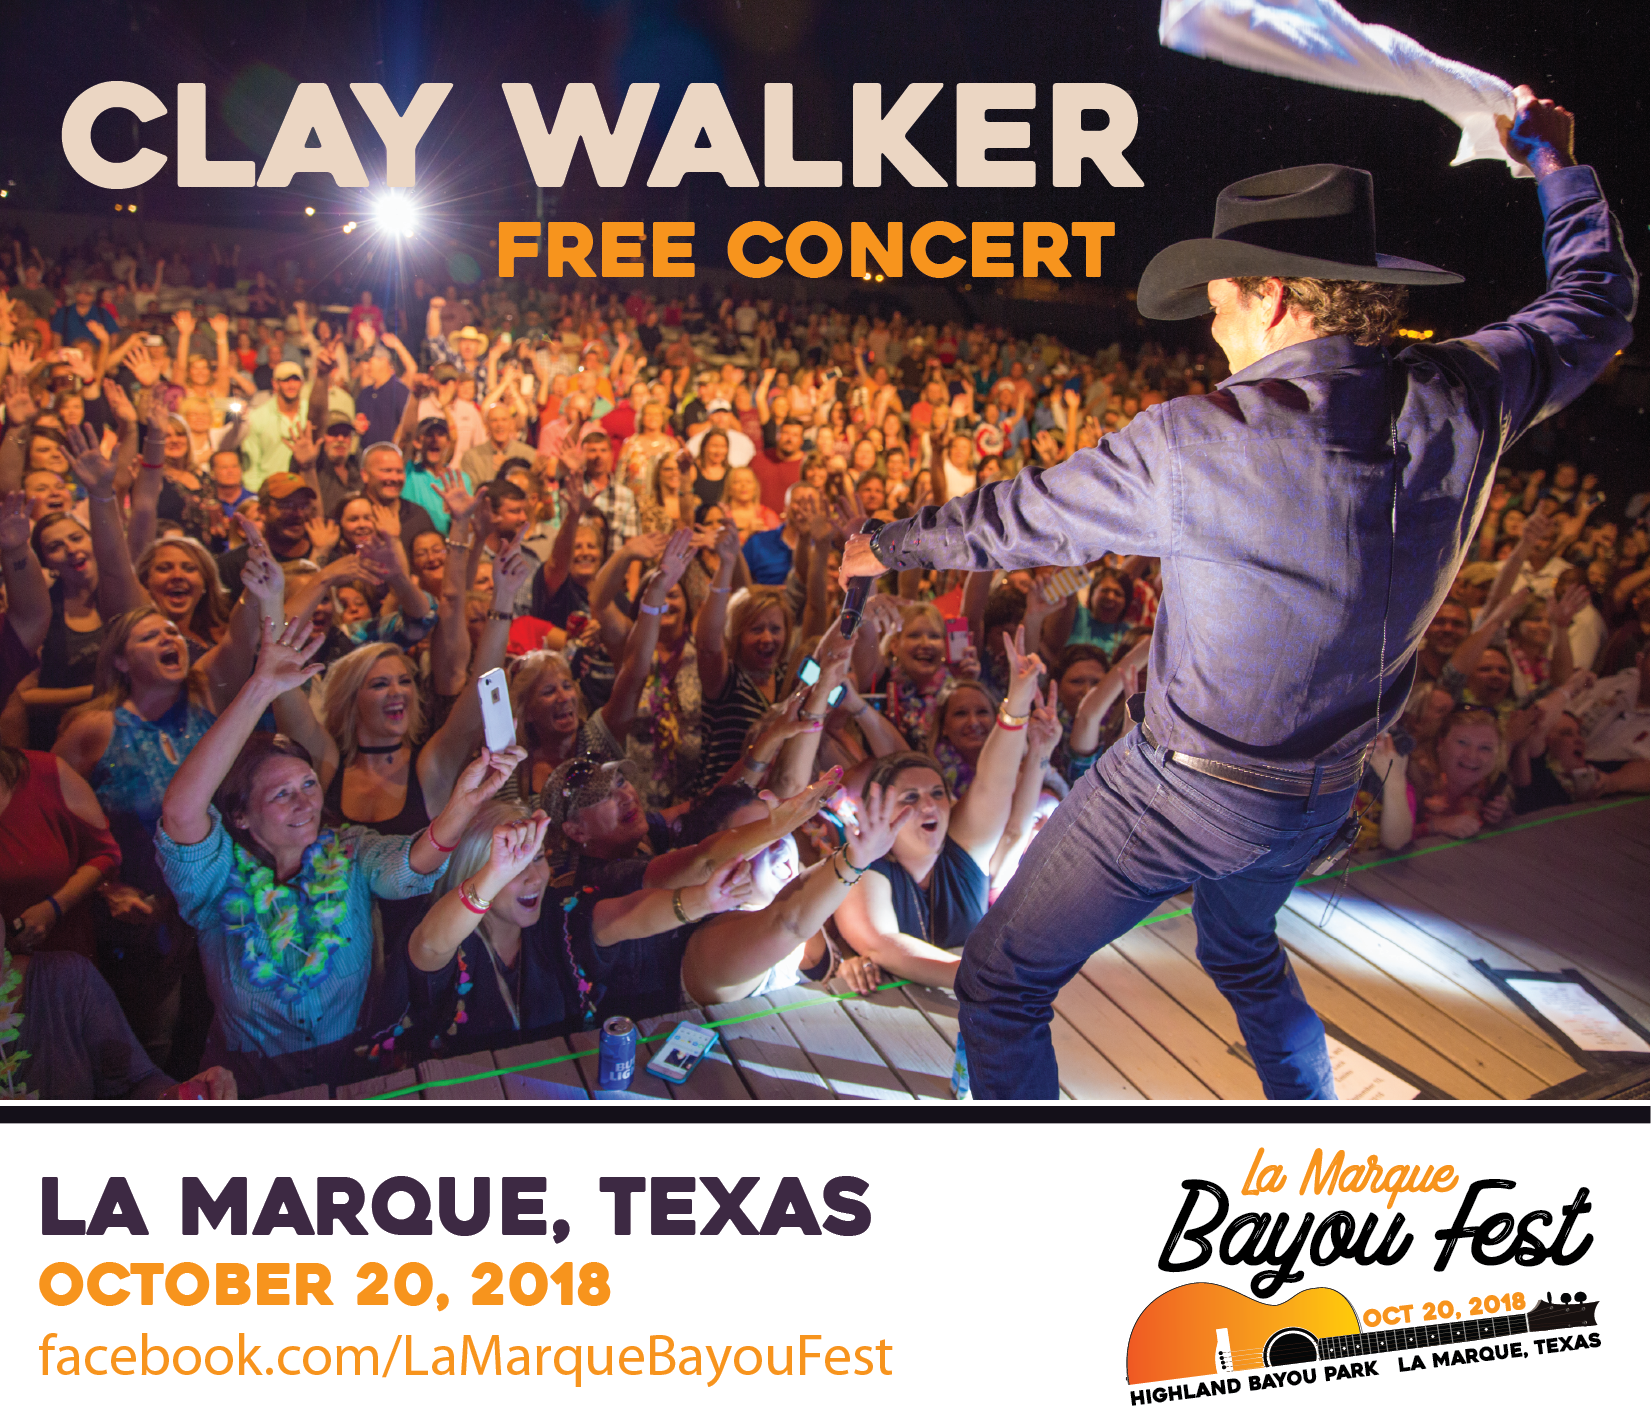 Clay Walker ad